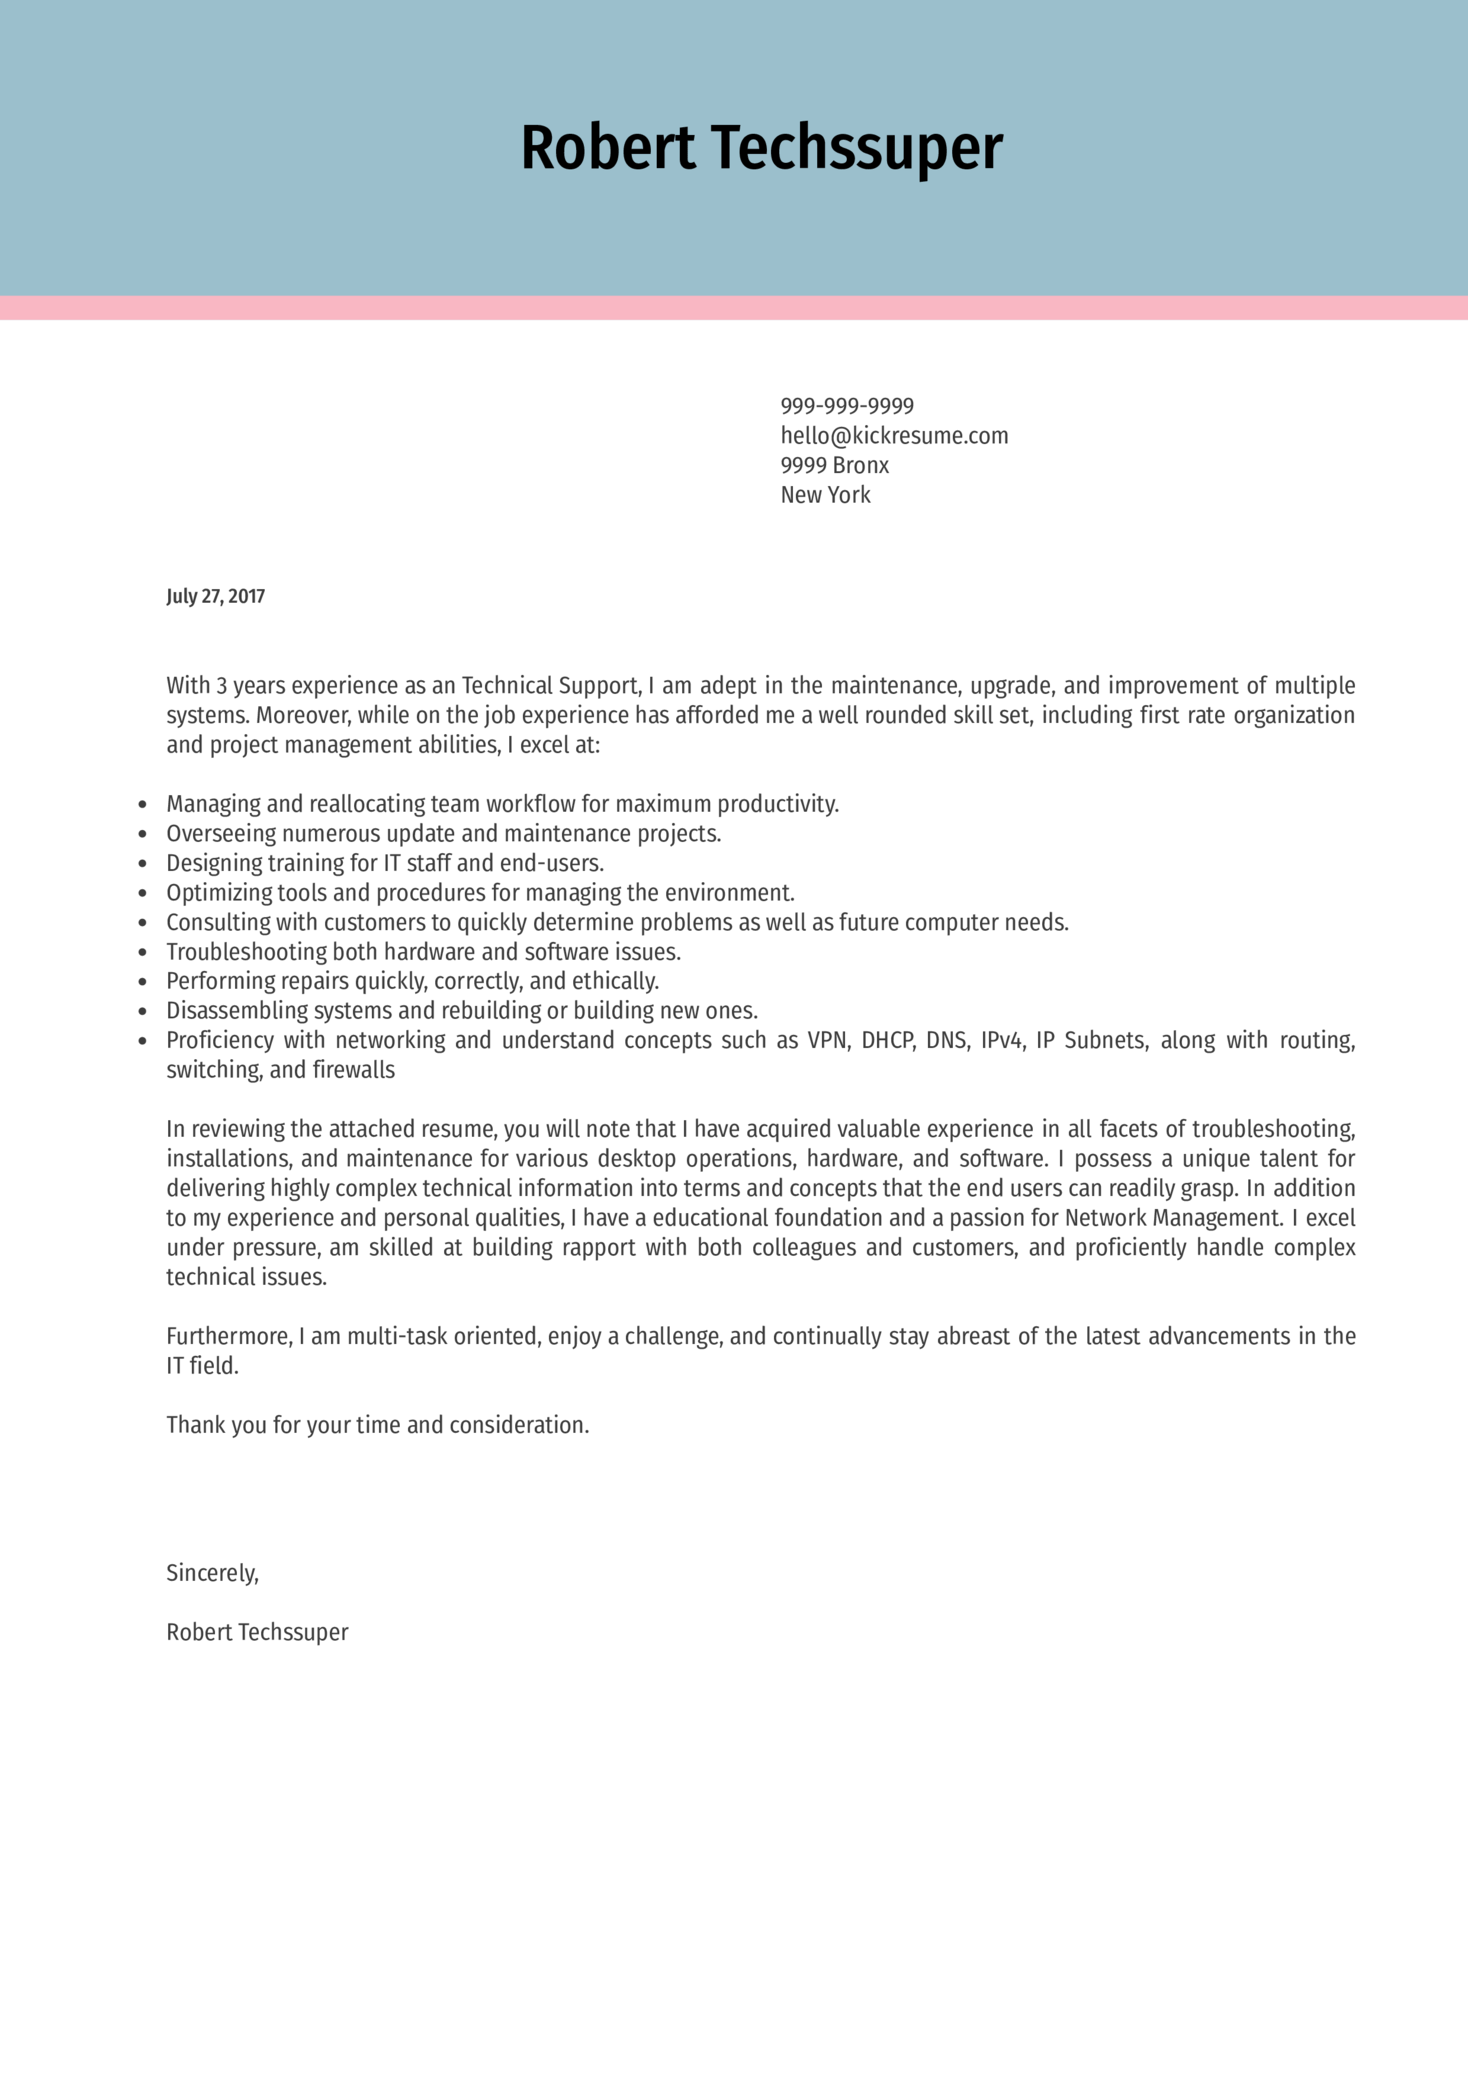 cover letter examples by real people  technical support